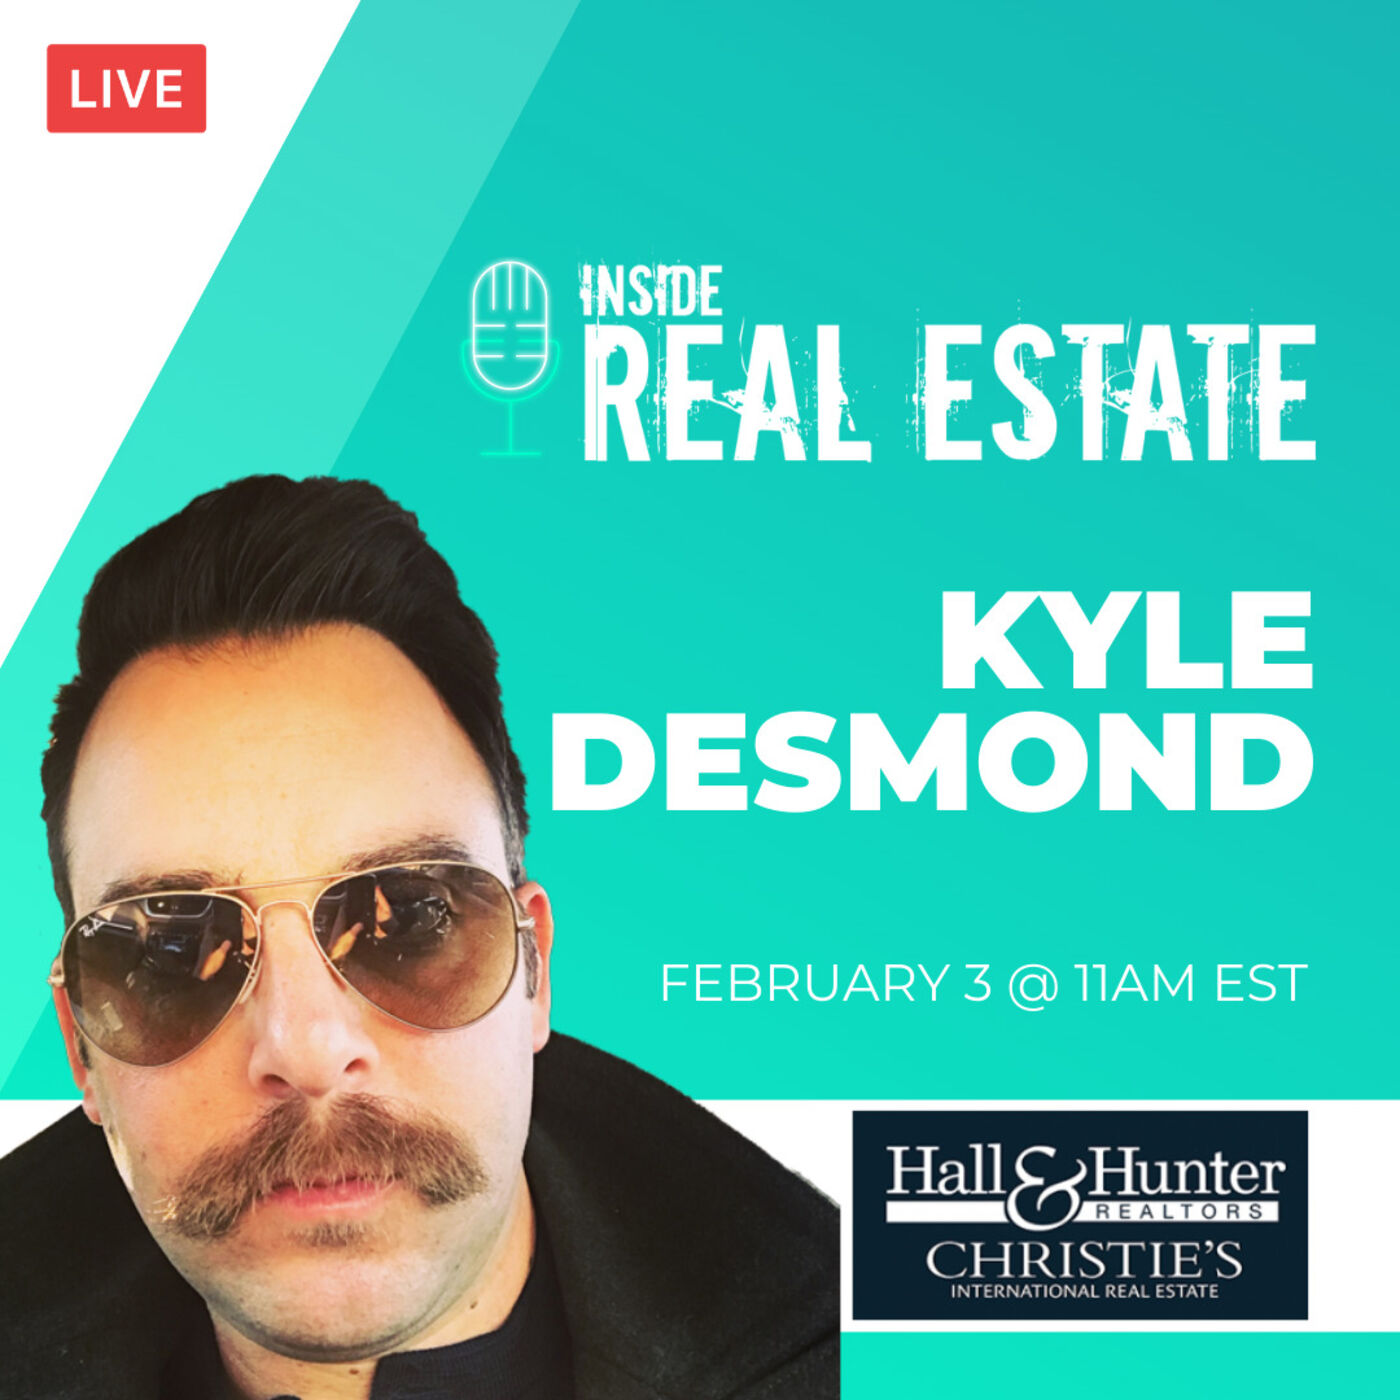 Kyle Desmond, Hall and Hunter Realtors - Home Prices Gain, Job Reports, and Evictions